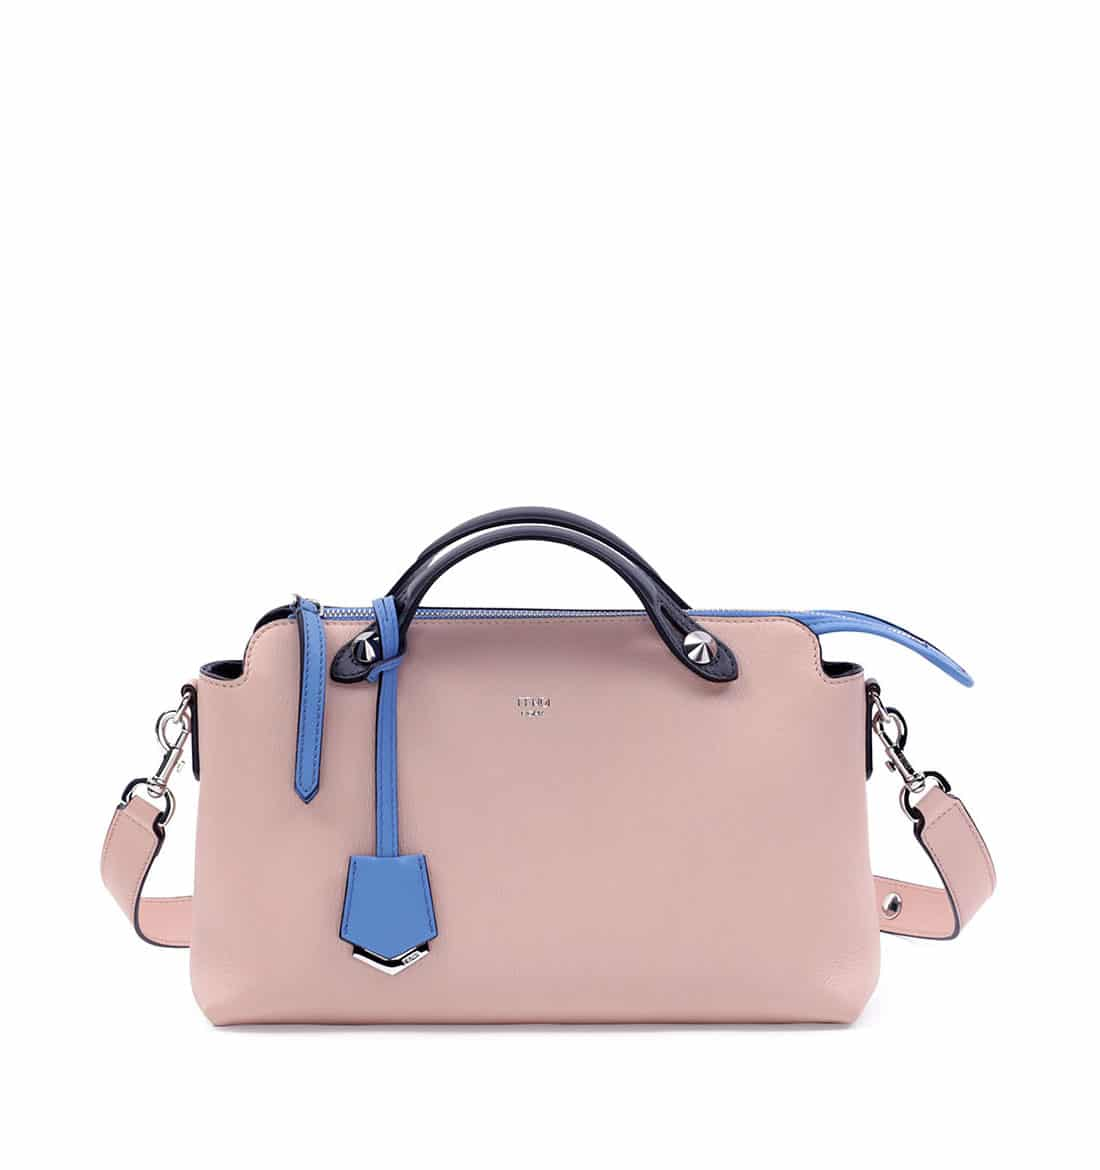 How Much Does It Cost >> best price fendi by the way bag mini 8c58a 42da9